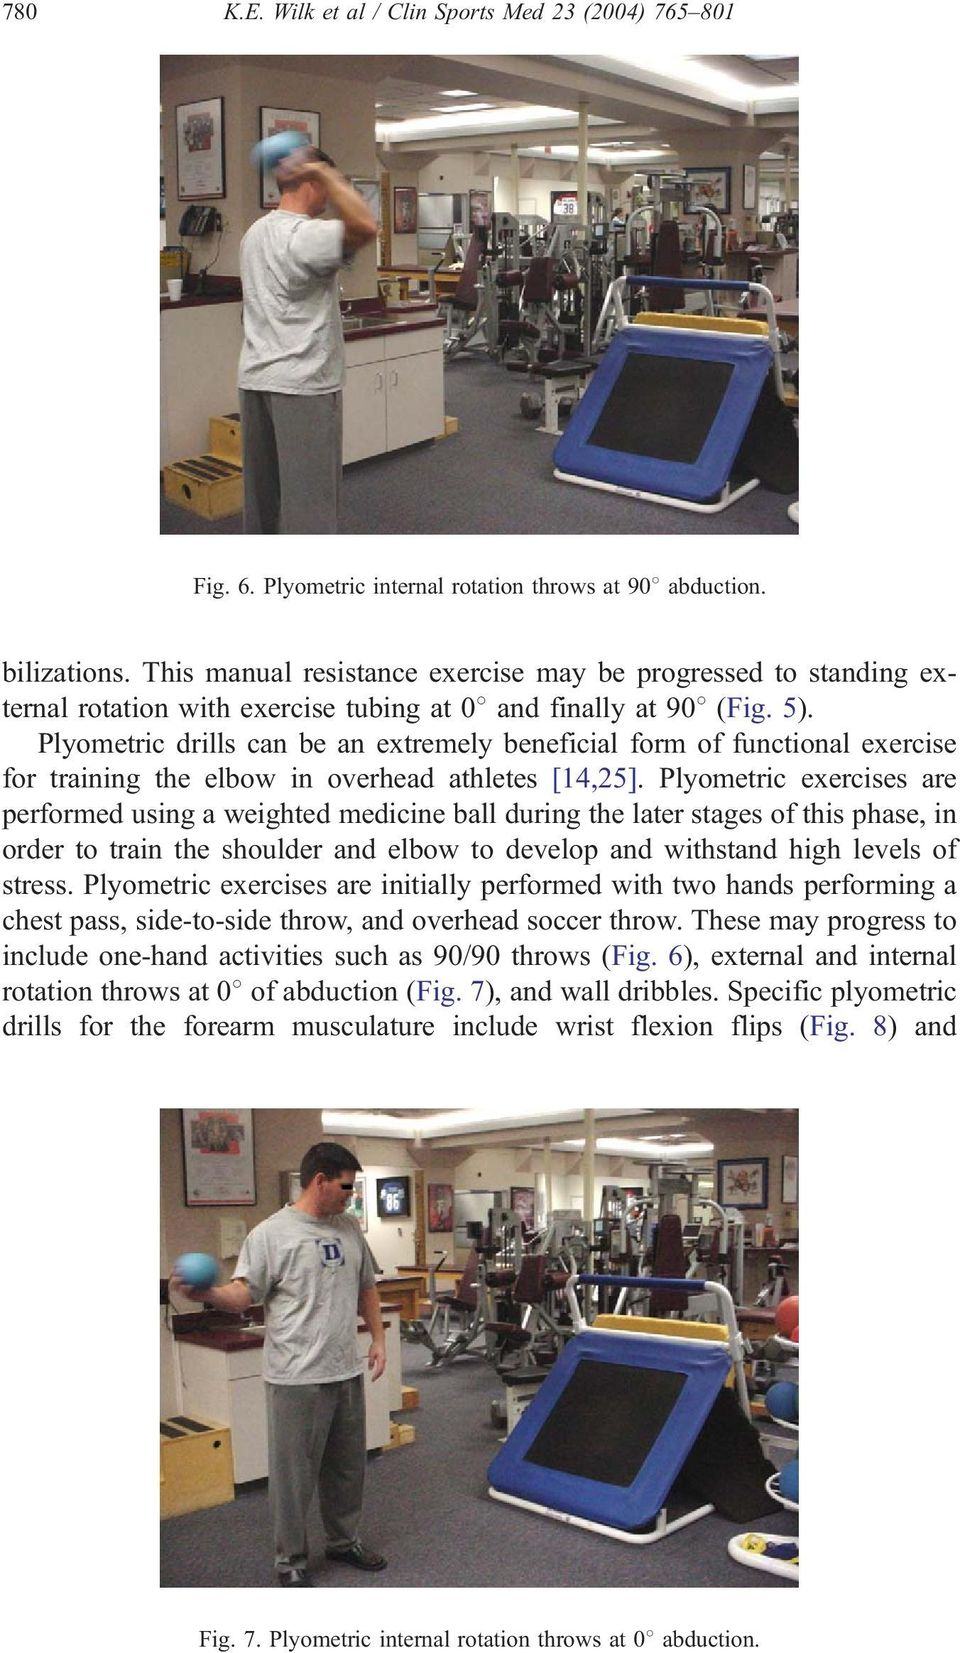 Plyometric drills can be an extremely beneficial form of functional exercise for training the elbow in overhead athletes [14,25].